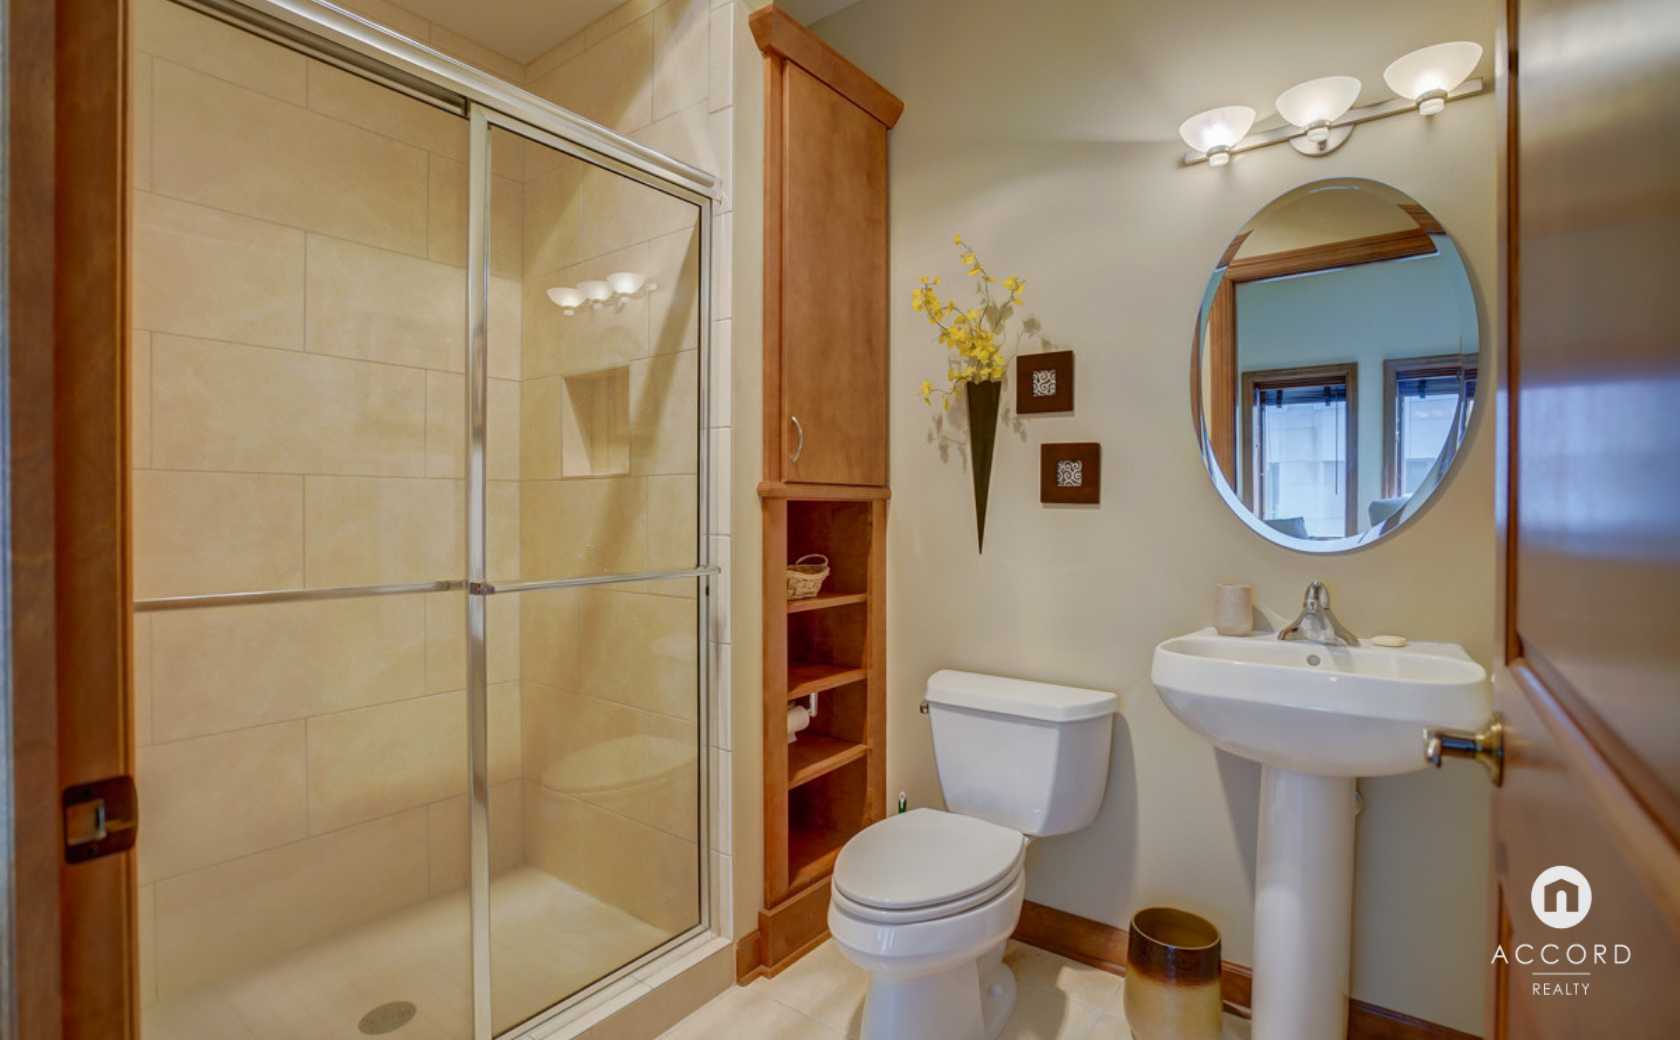 123 W Washington Ave #303 Madison, WI 53703 - Full Bath.png